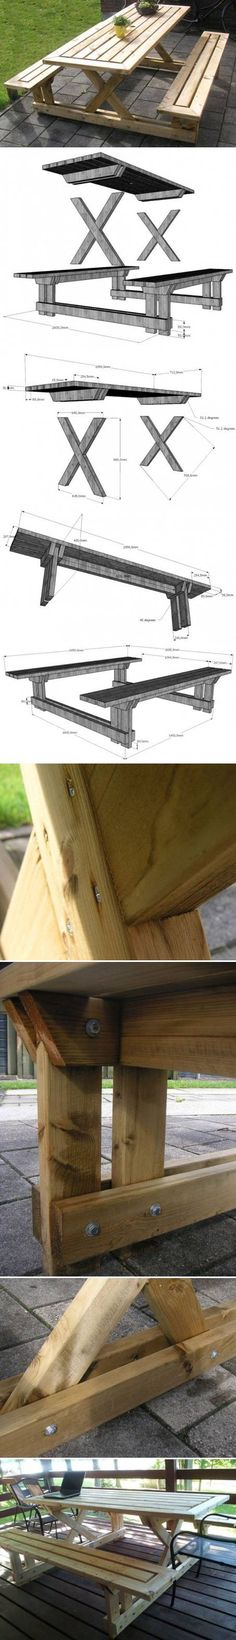 How to Make Garden Bench and Table step by step DIY tutorial instructions | How To Instructions